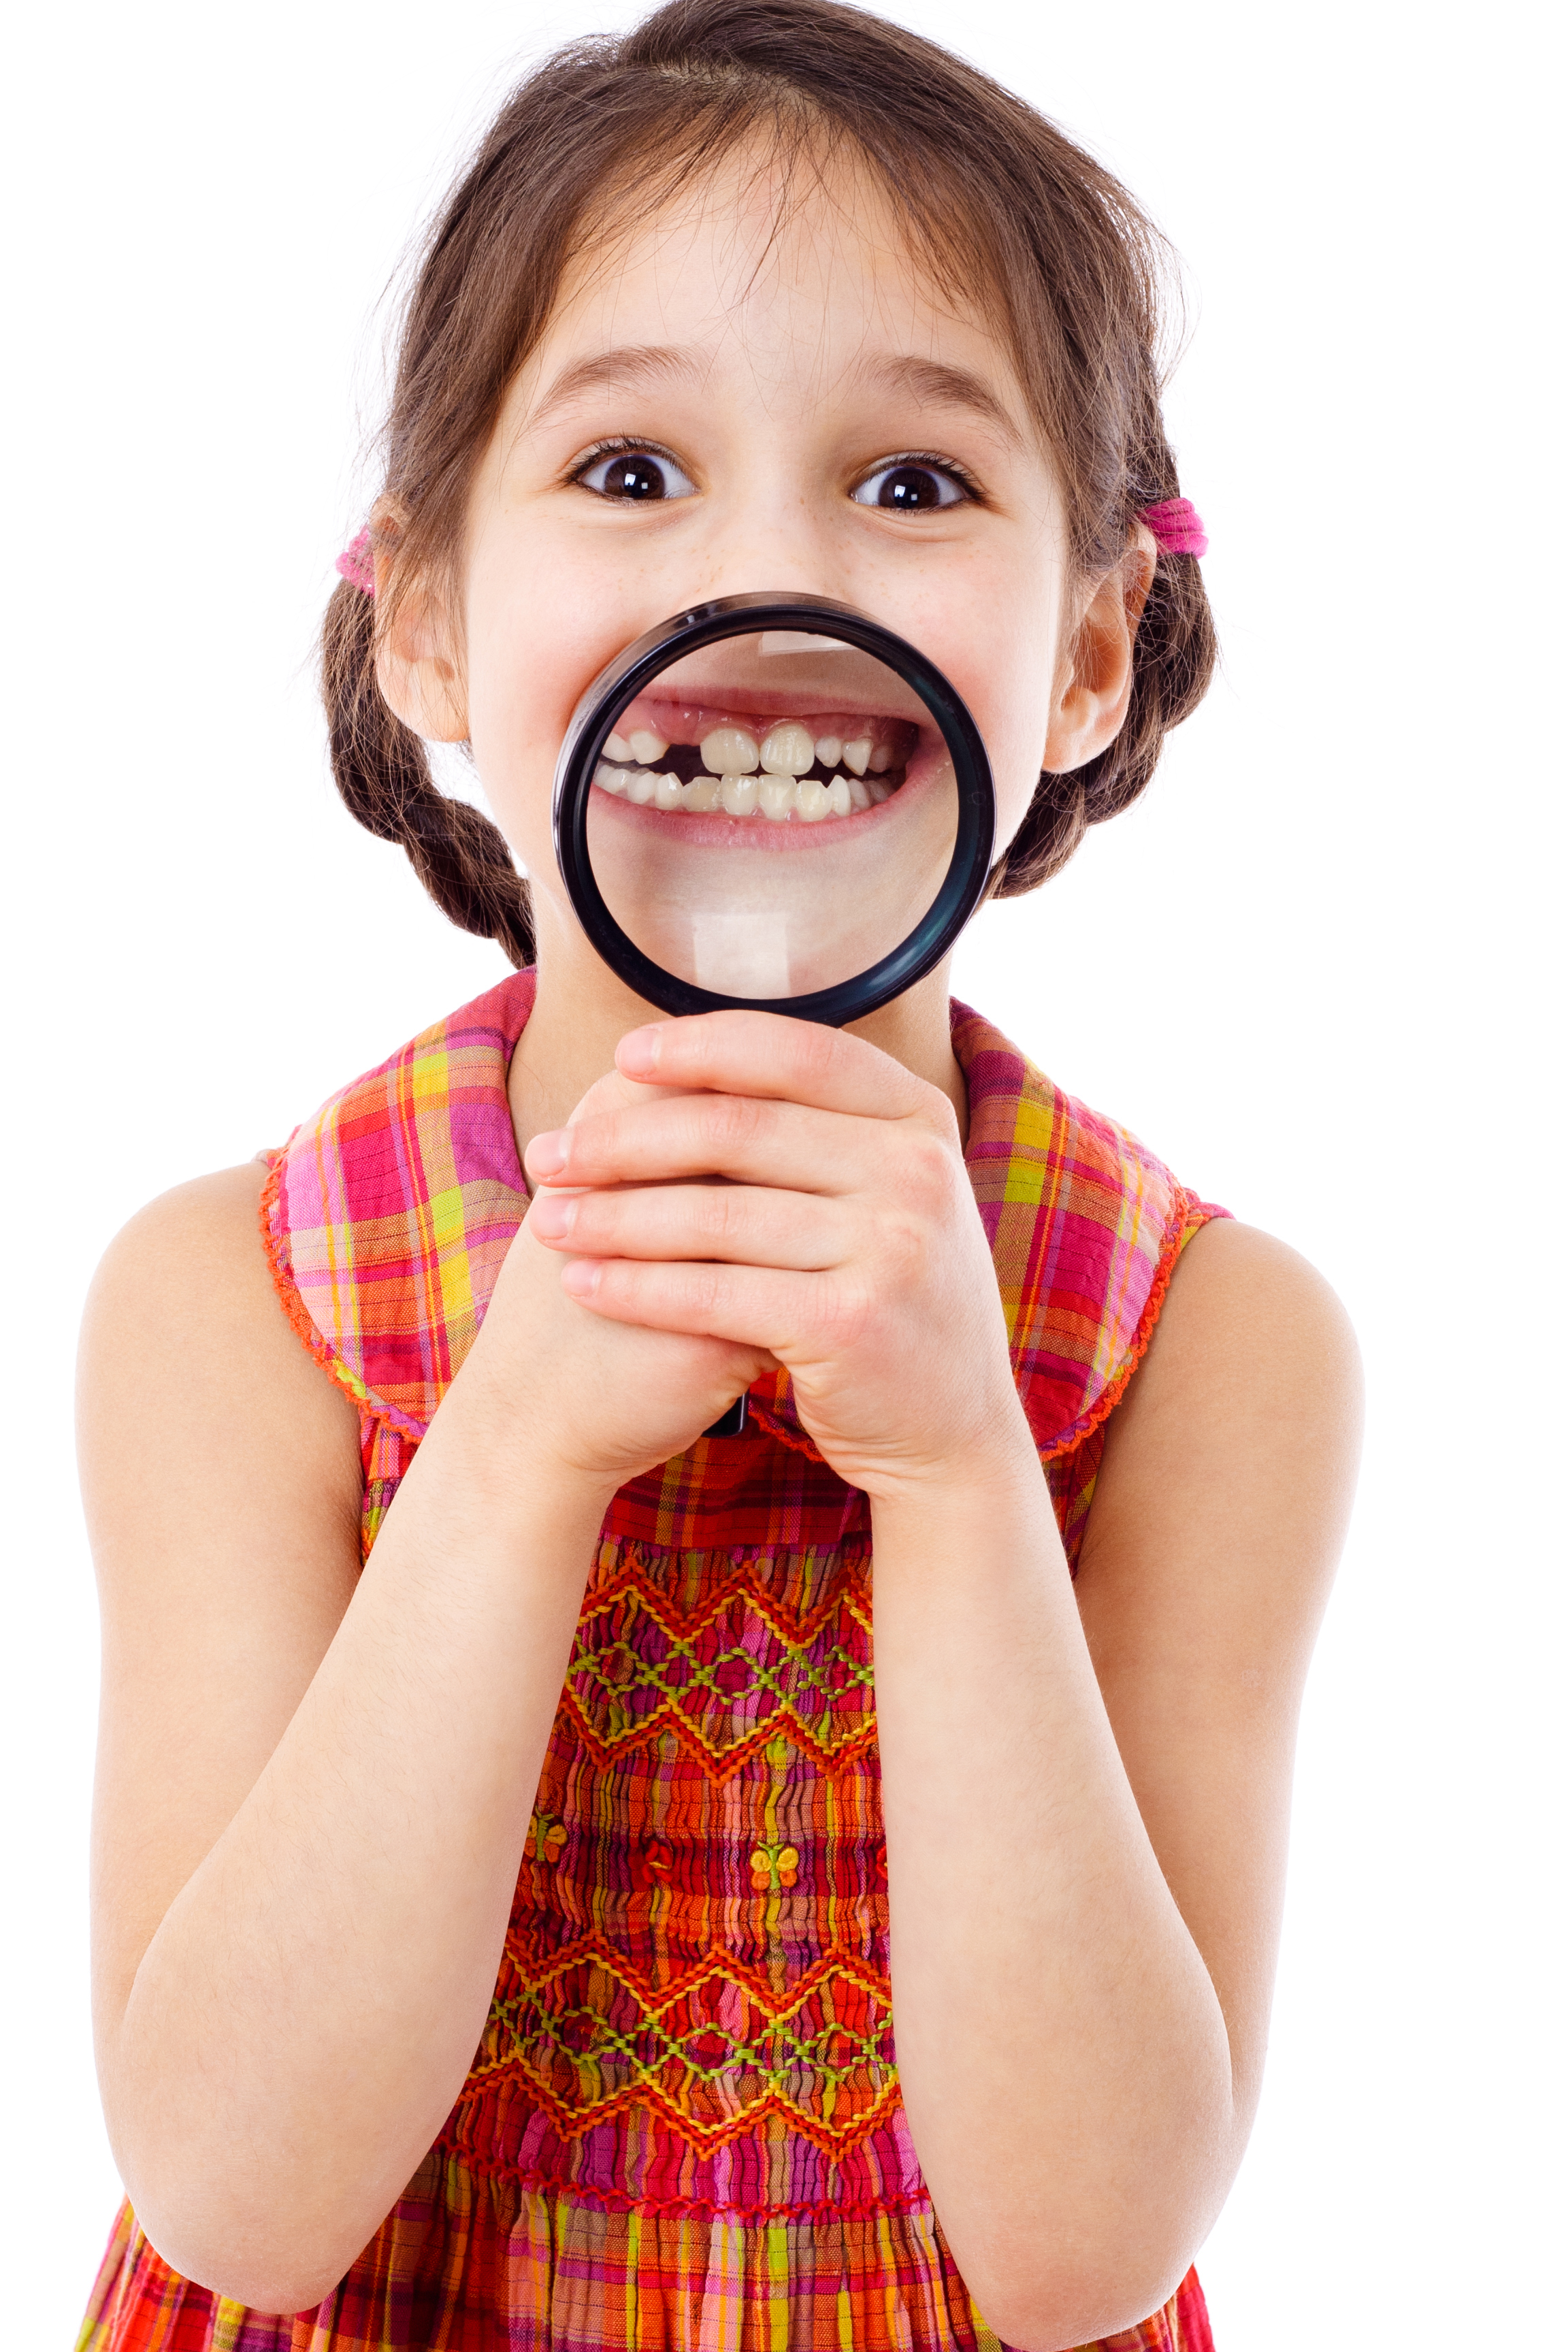 Children's dentist in Fanwood